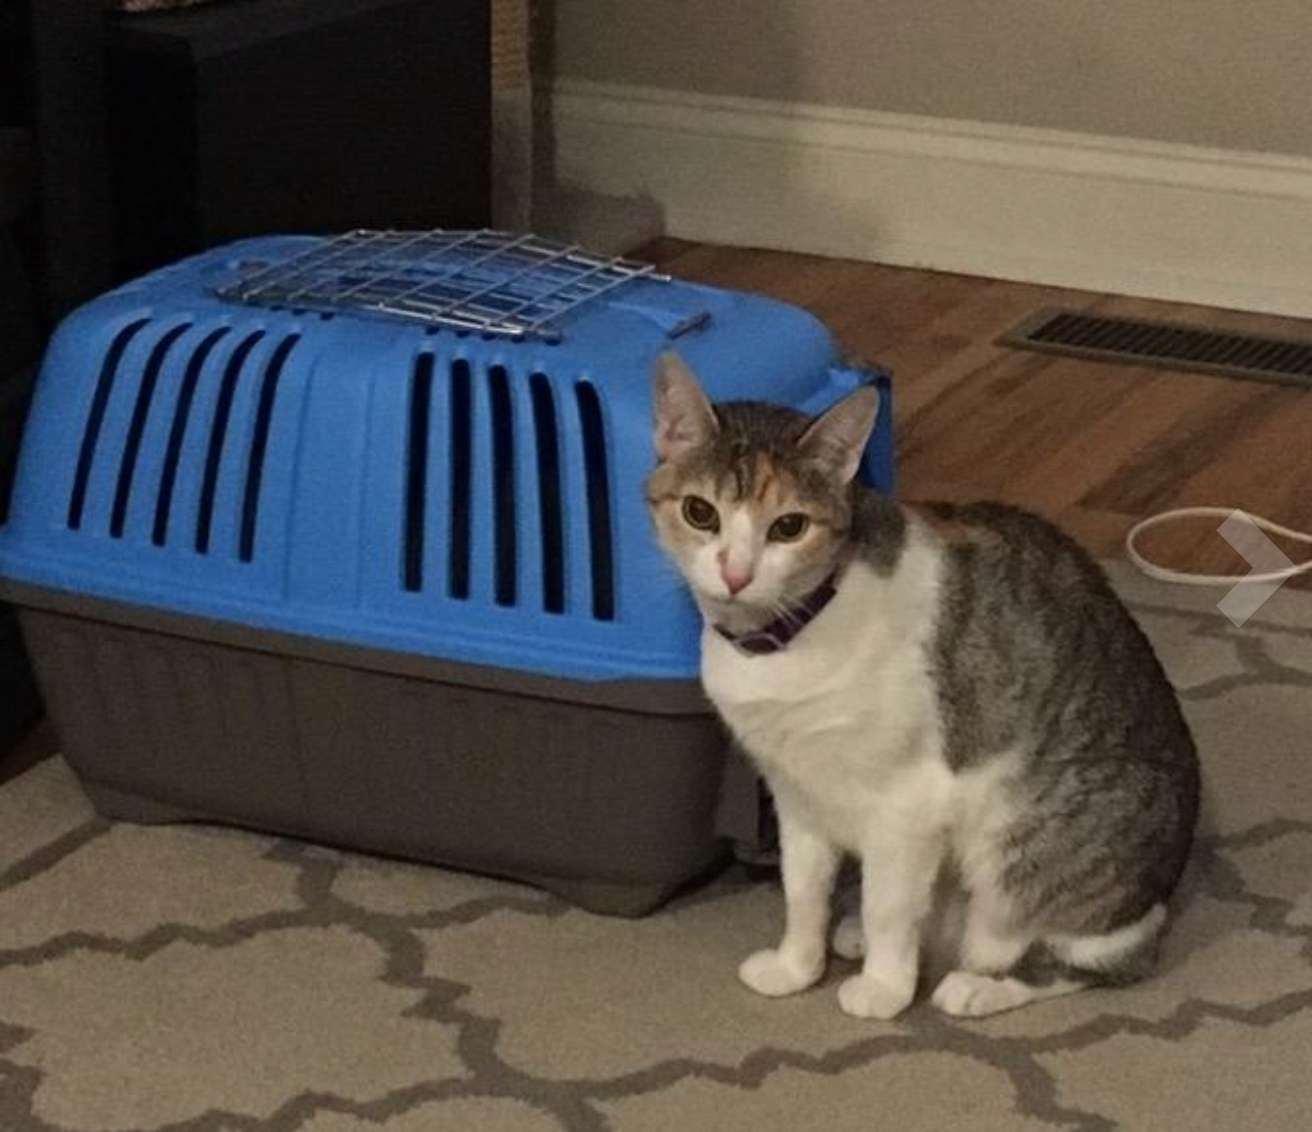 A reviewer's image of their cat with the blue and gray pet carrier